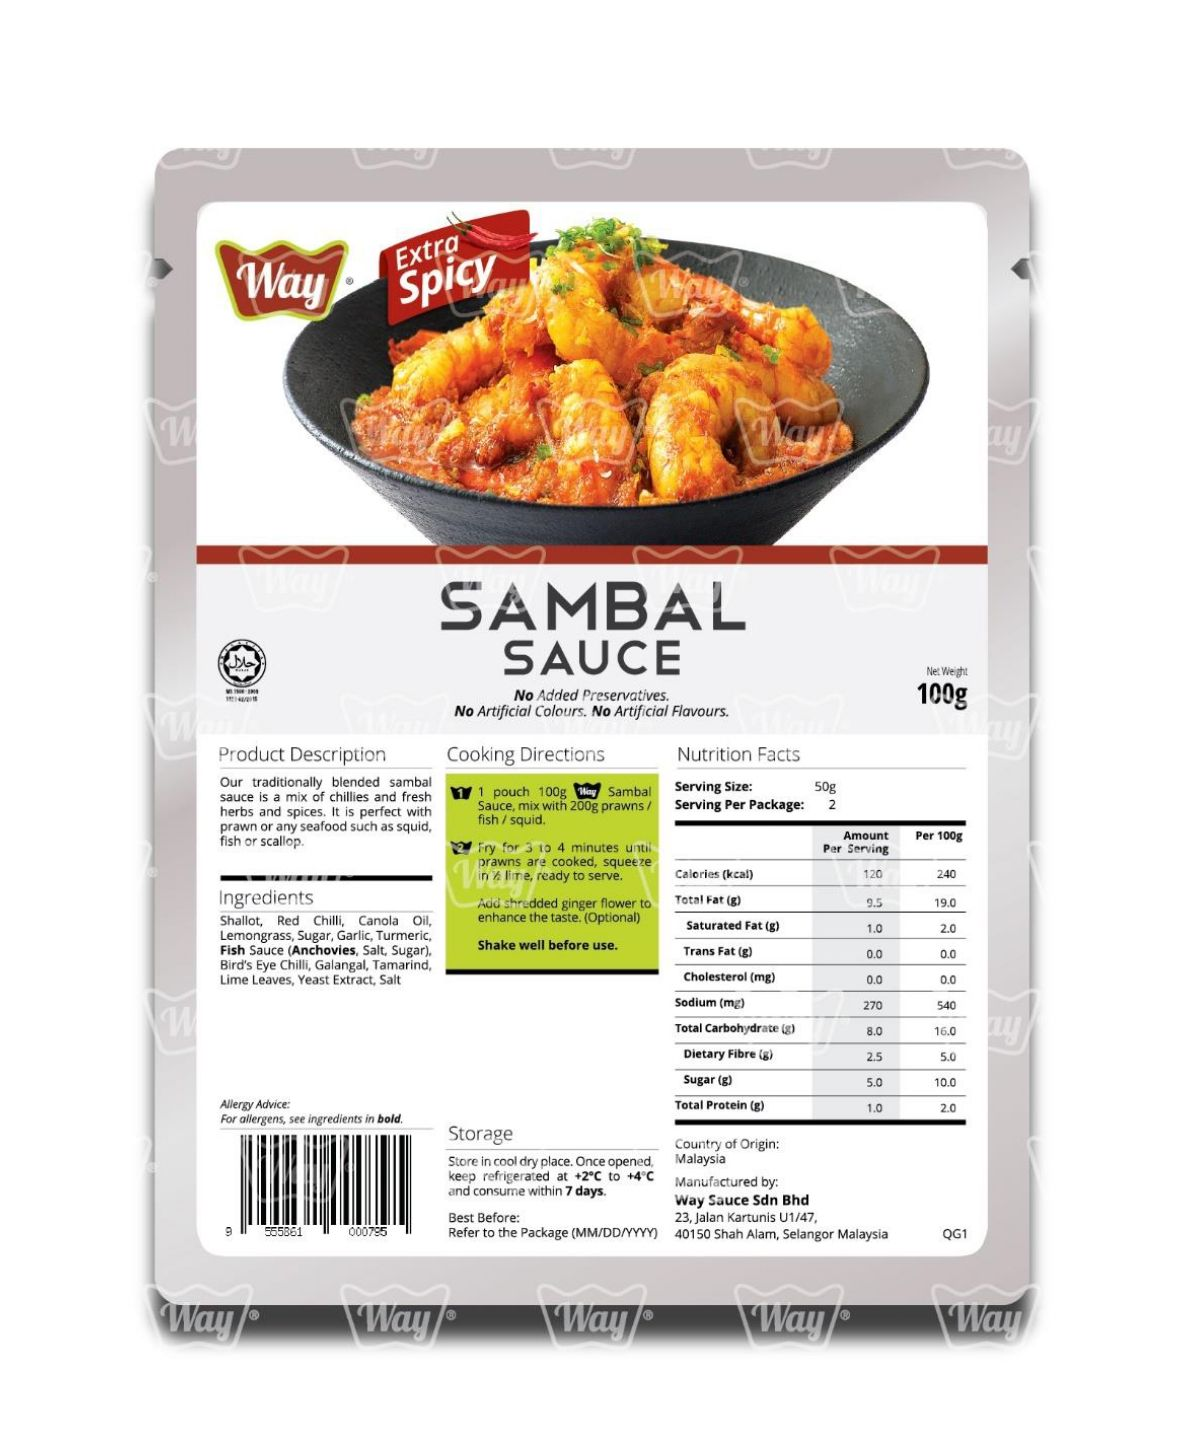 Sambal Sauce Extra Spicy Way Sauce Brand Food Seasoning Manufacturer Spice Bag Packaging Refined Processing Ready Shipping